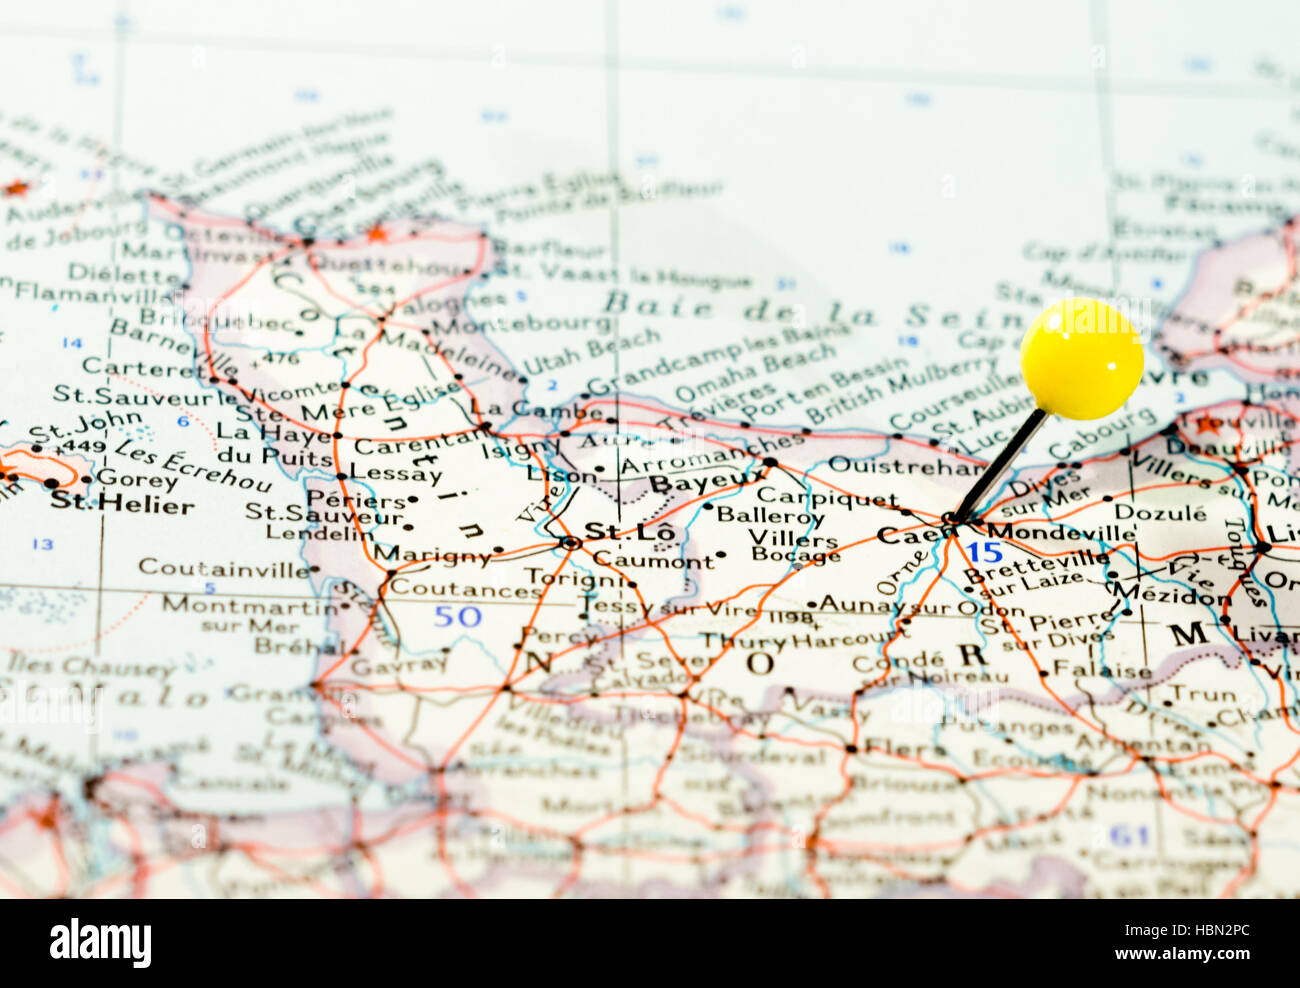 Caen France location pinned on the route map Stock Photo Royalty